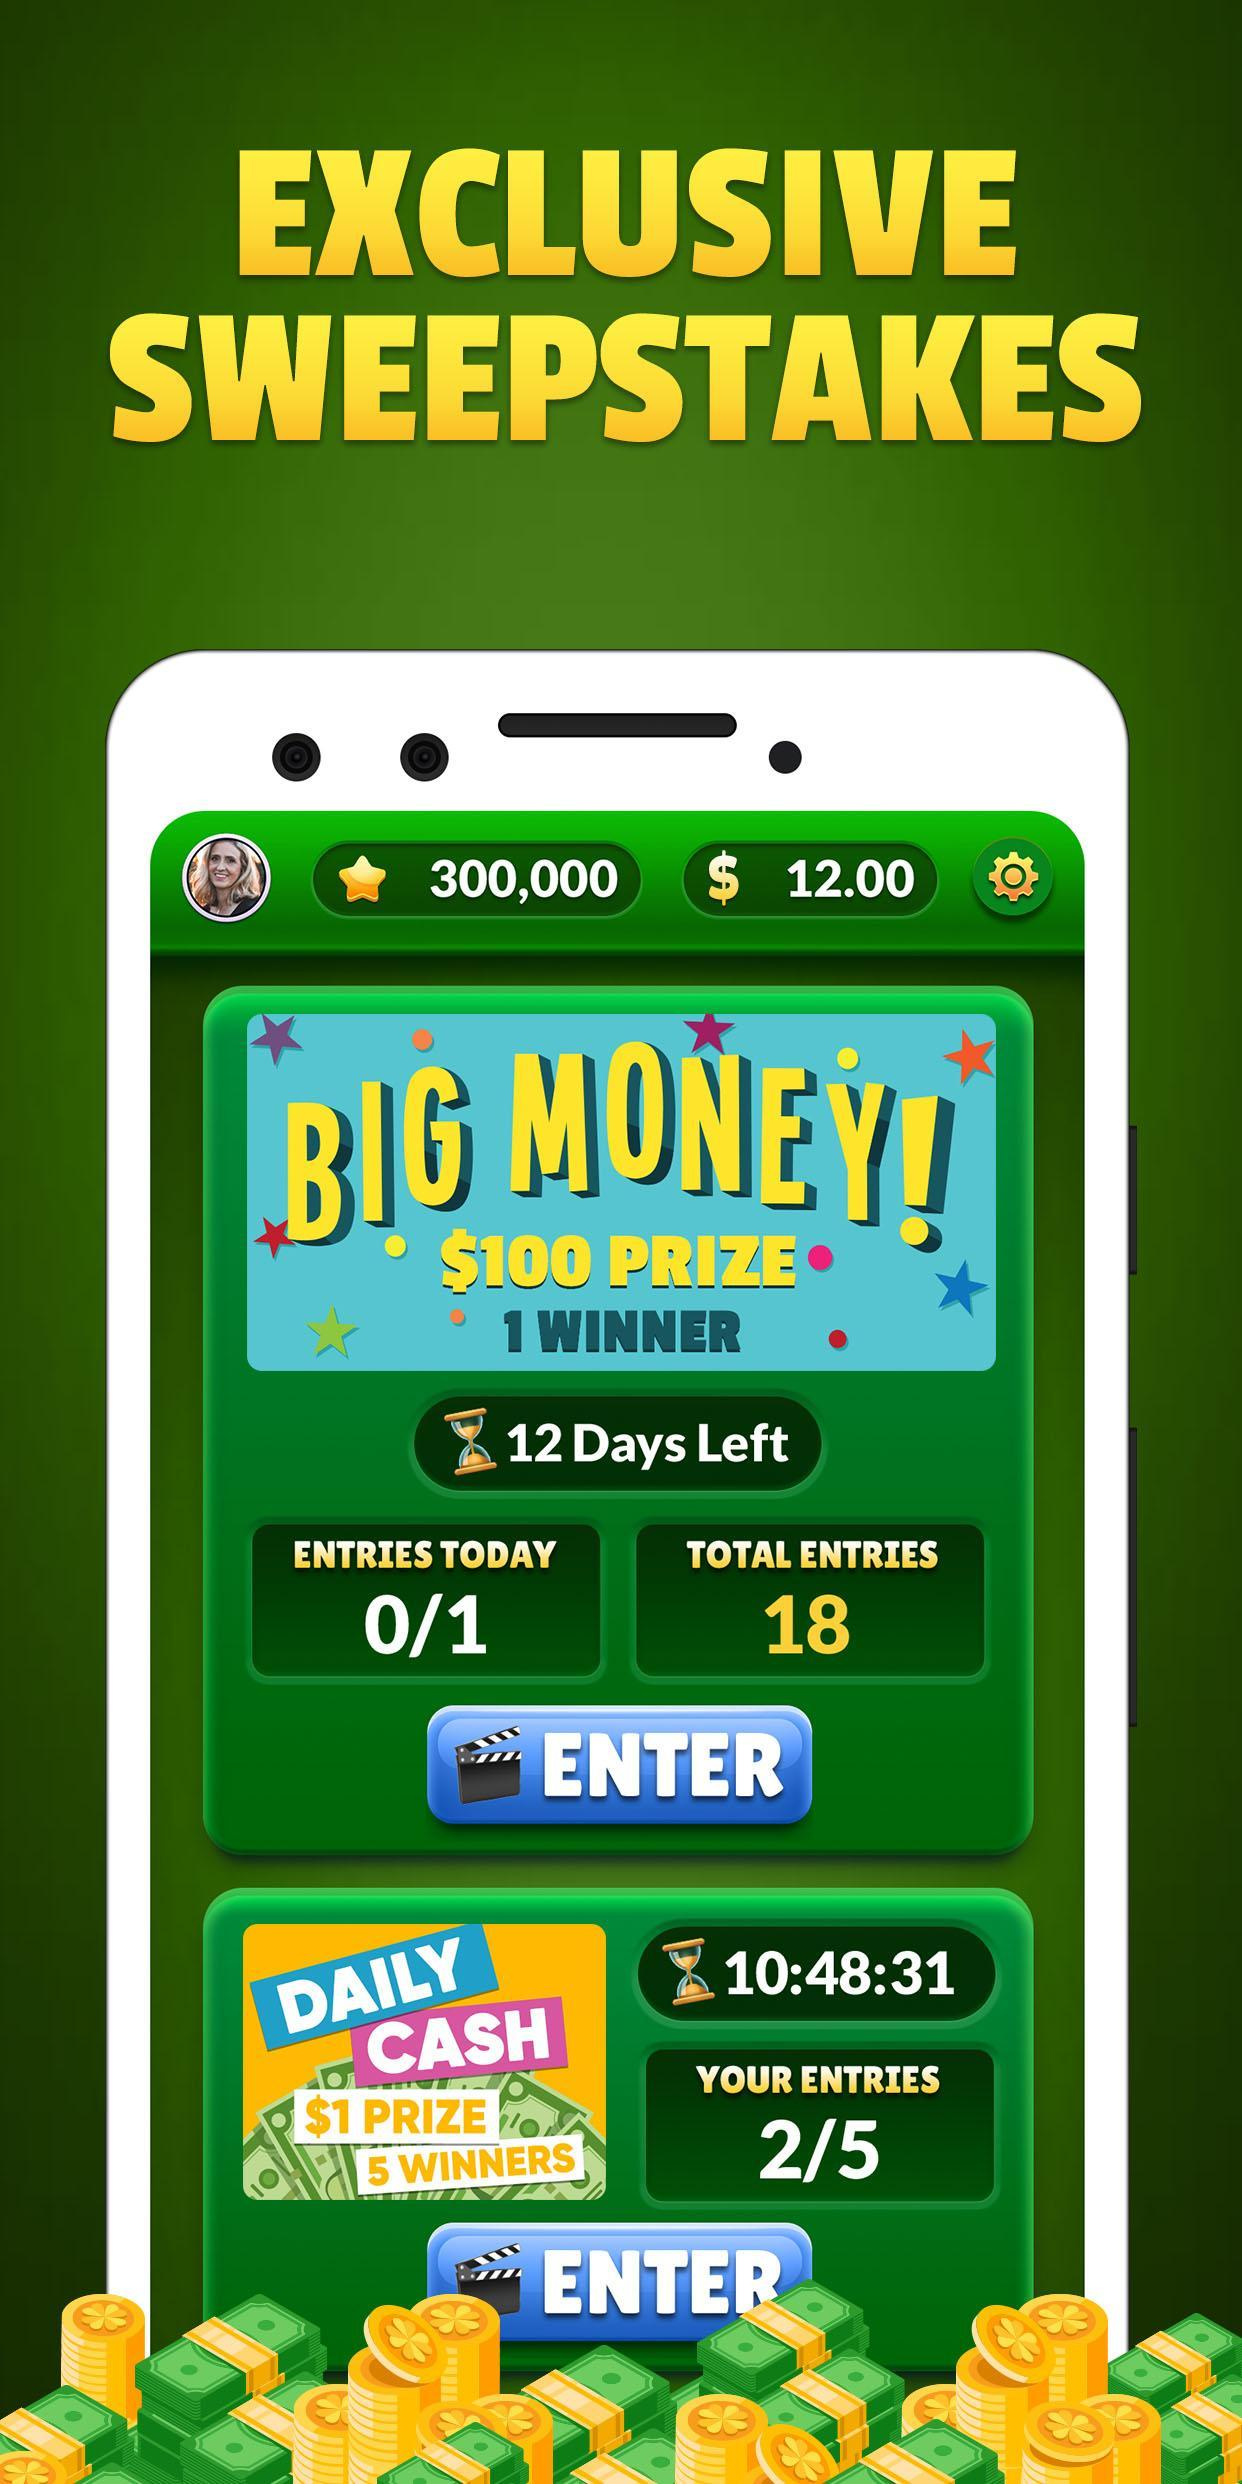 Lucky Scratch WIN REAL MONEY- it's your LUCKY DAY 47.0.0 Screenshot 4